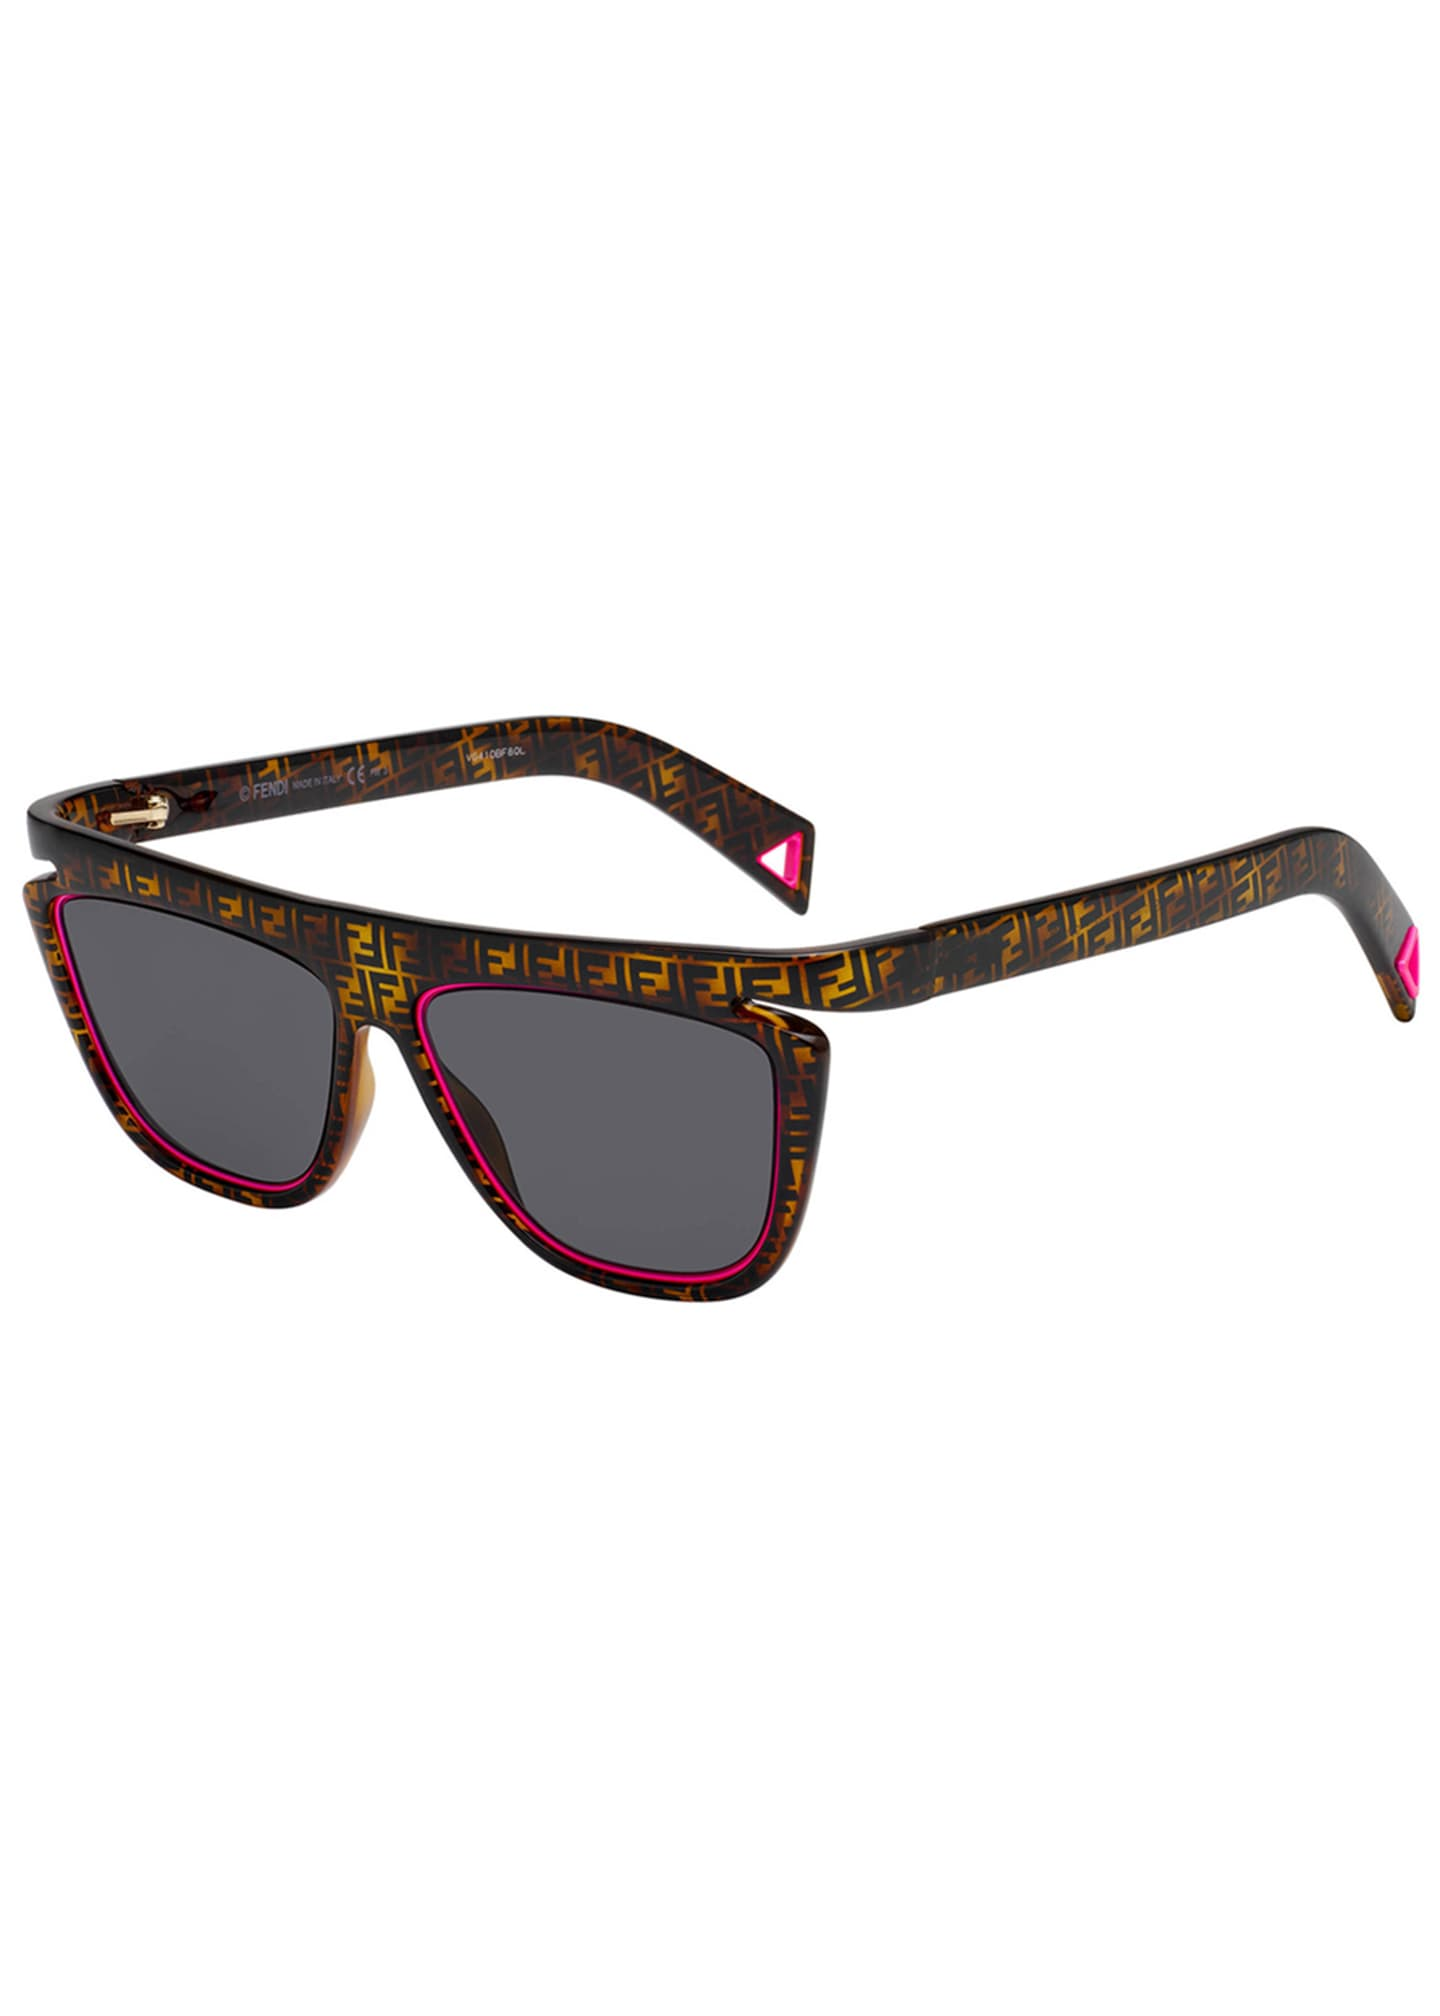 Fendi Men's FF Havana Fluorescent-Trim Sunglasses